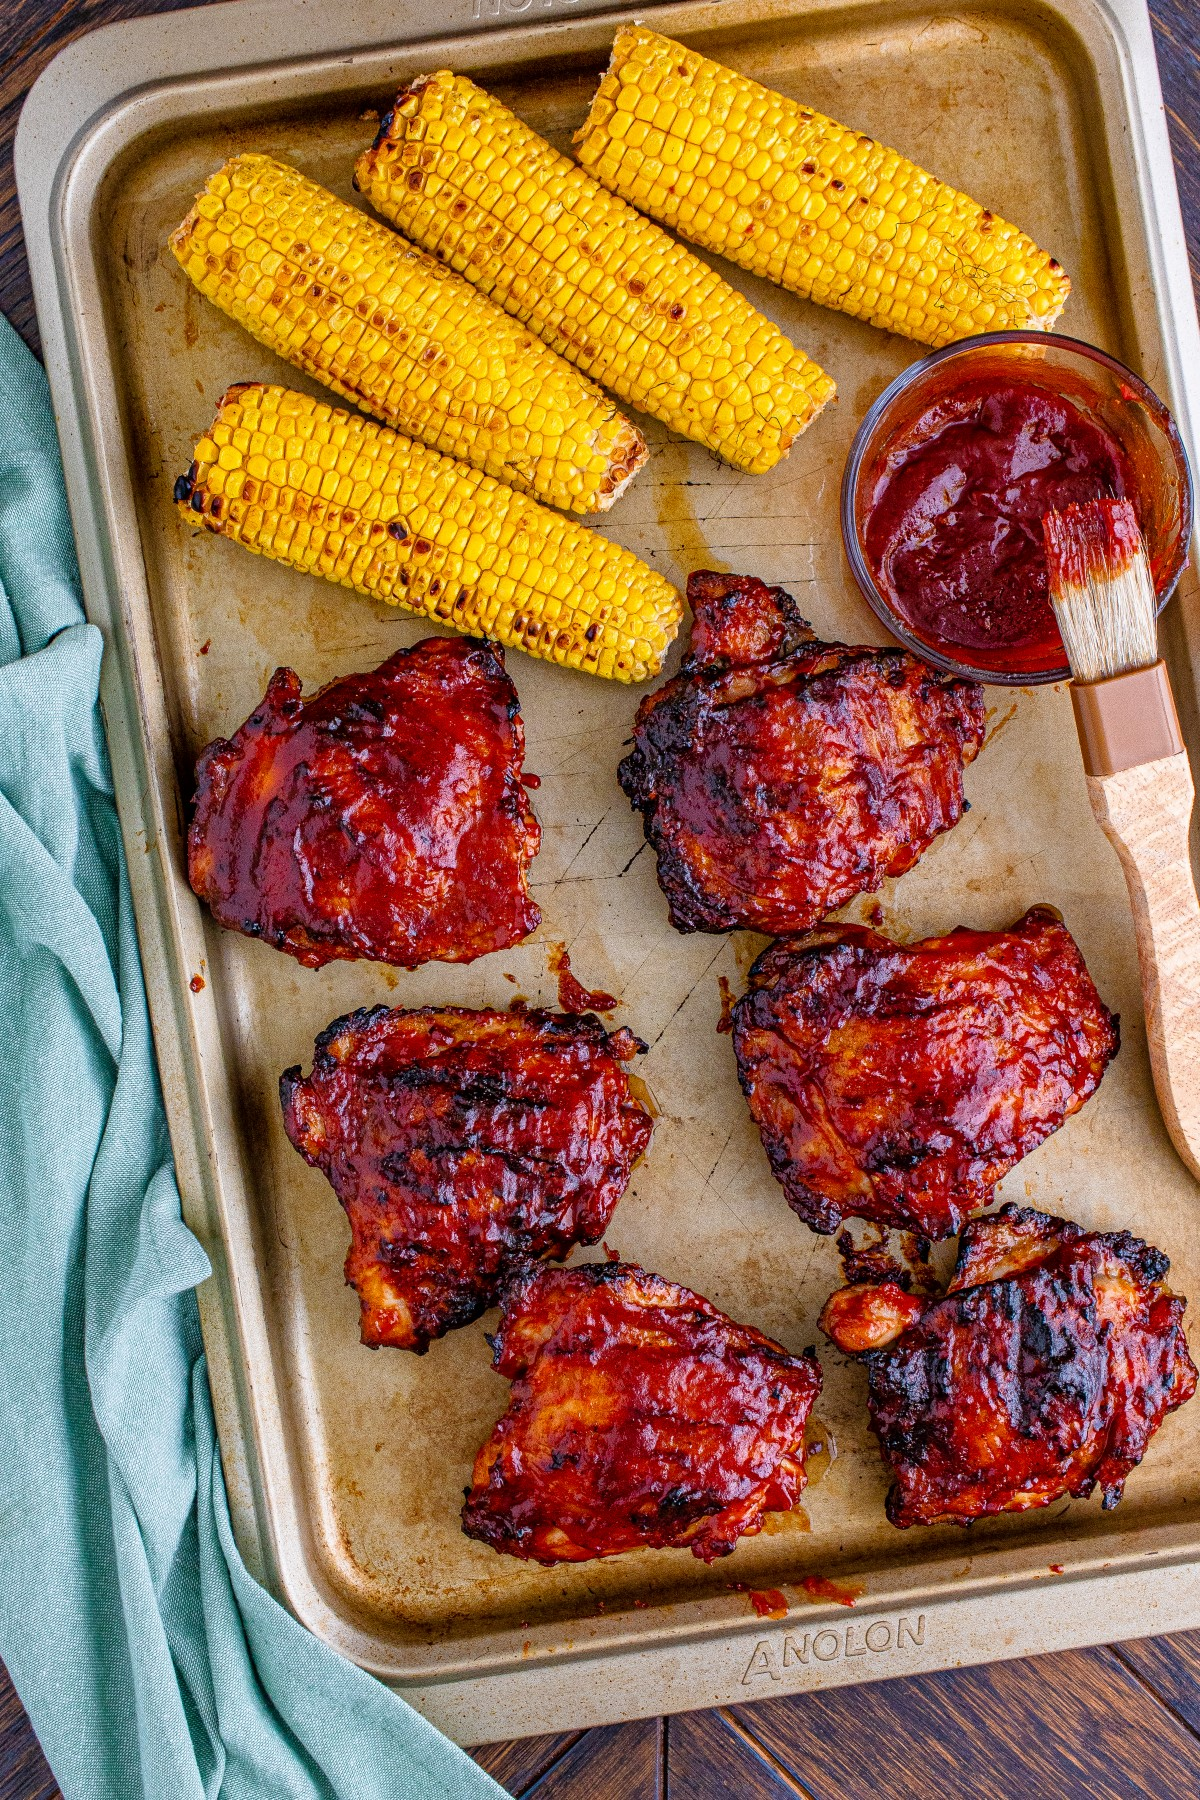 Grilled BBQ chicken thighs covered in BBQ sauce on a baking sheet with grilled cobs of corn and a glass bowl filled with BBQ sauce and a brush